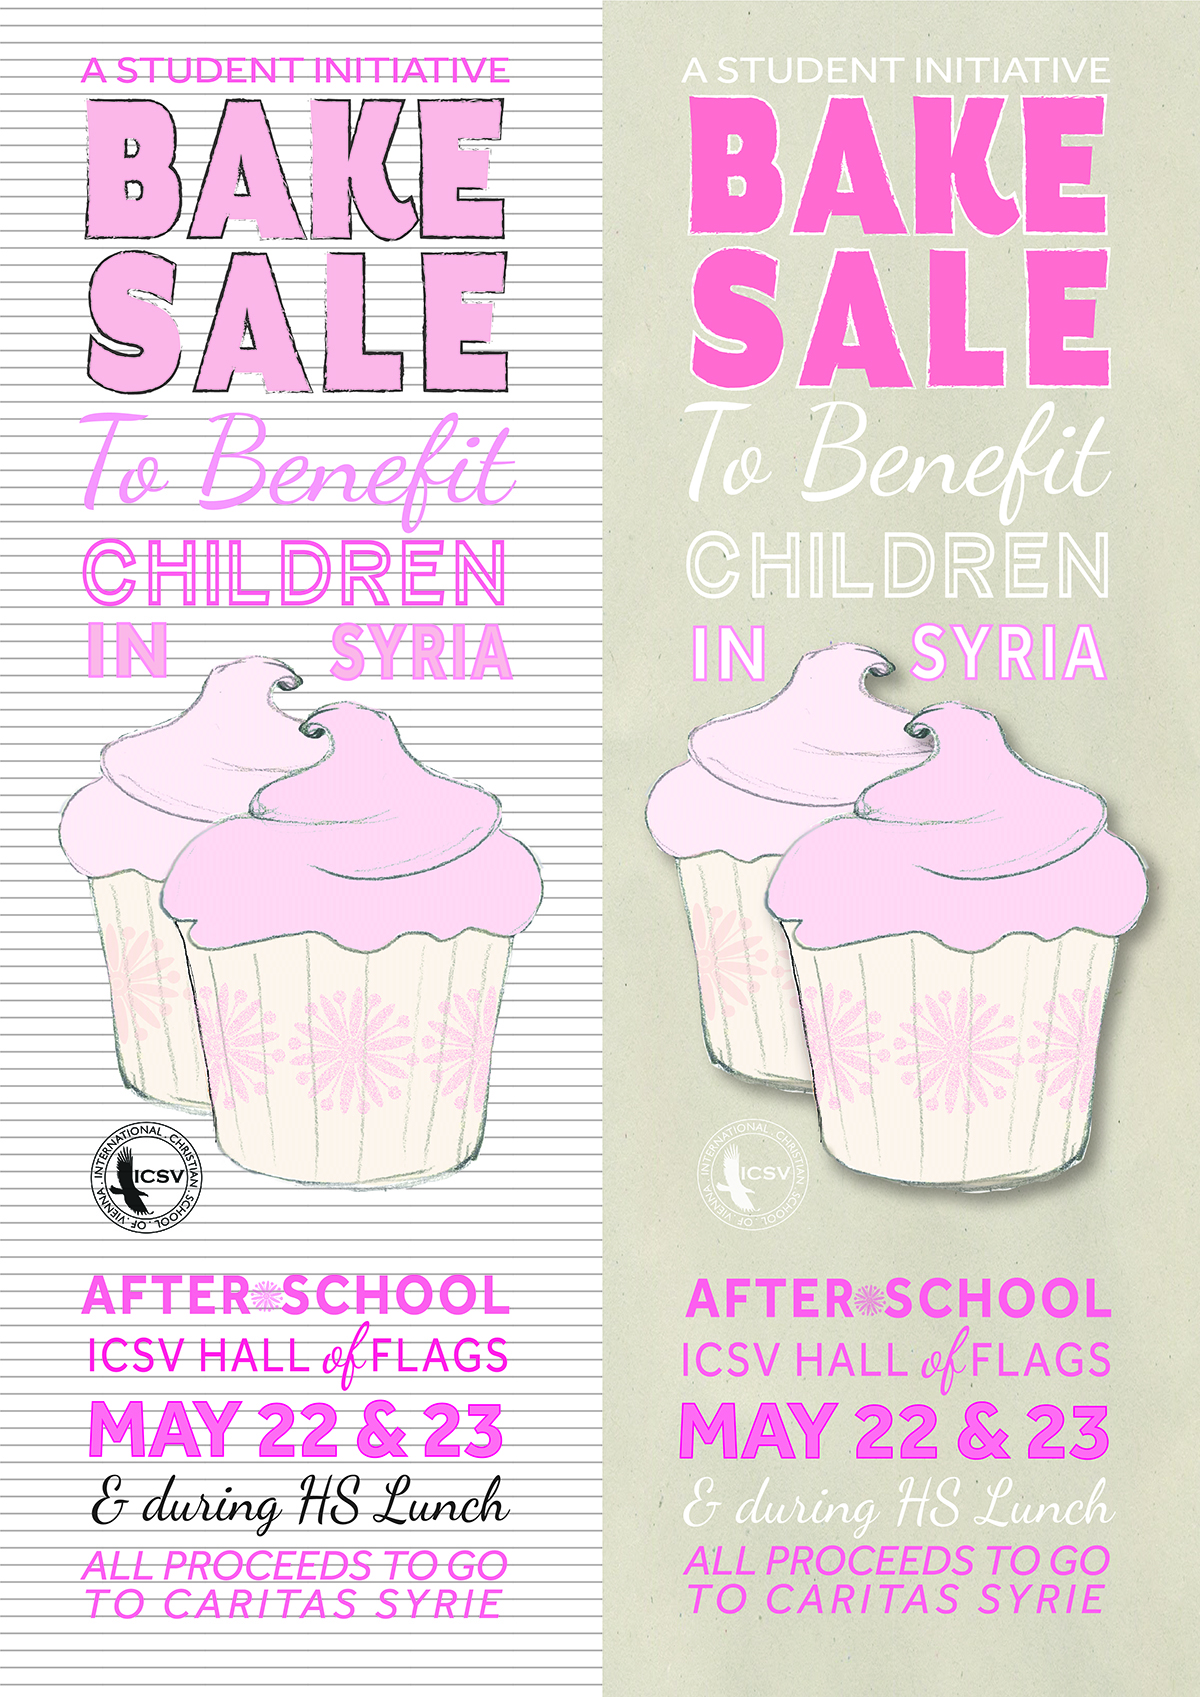 student initiated bake for children in syria versions of student initiated bake for children in syria 2 versions of the same poster 2014 dax graphics9767